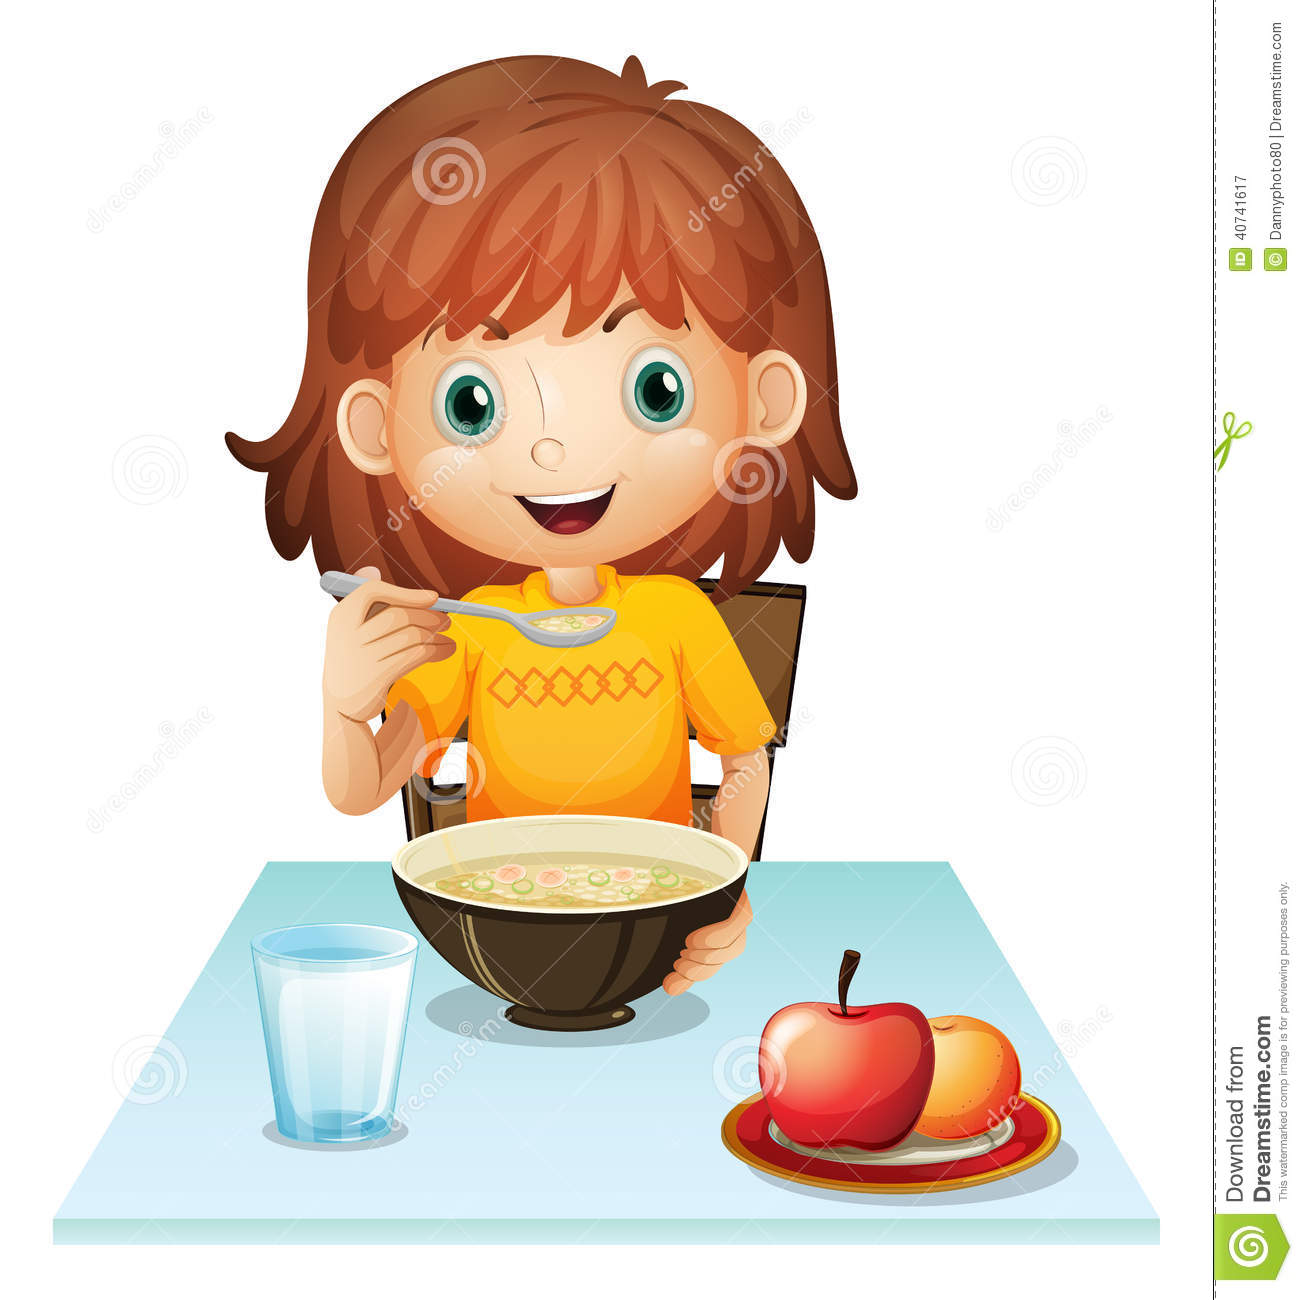 clipart girl eating breakfast - photo #29